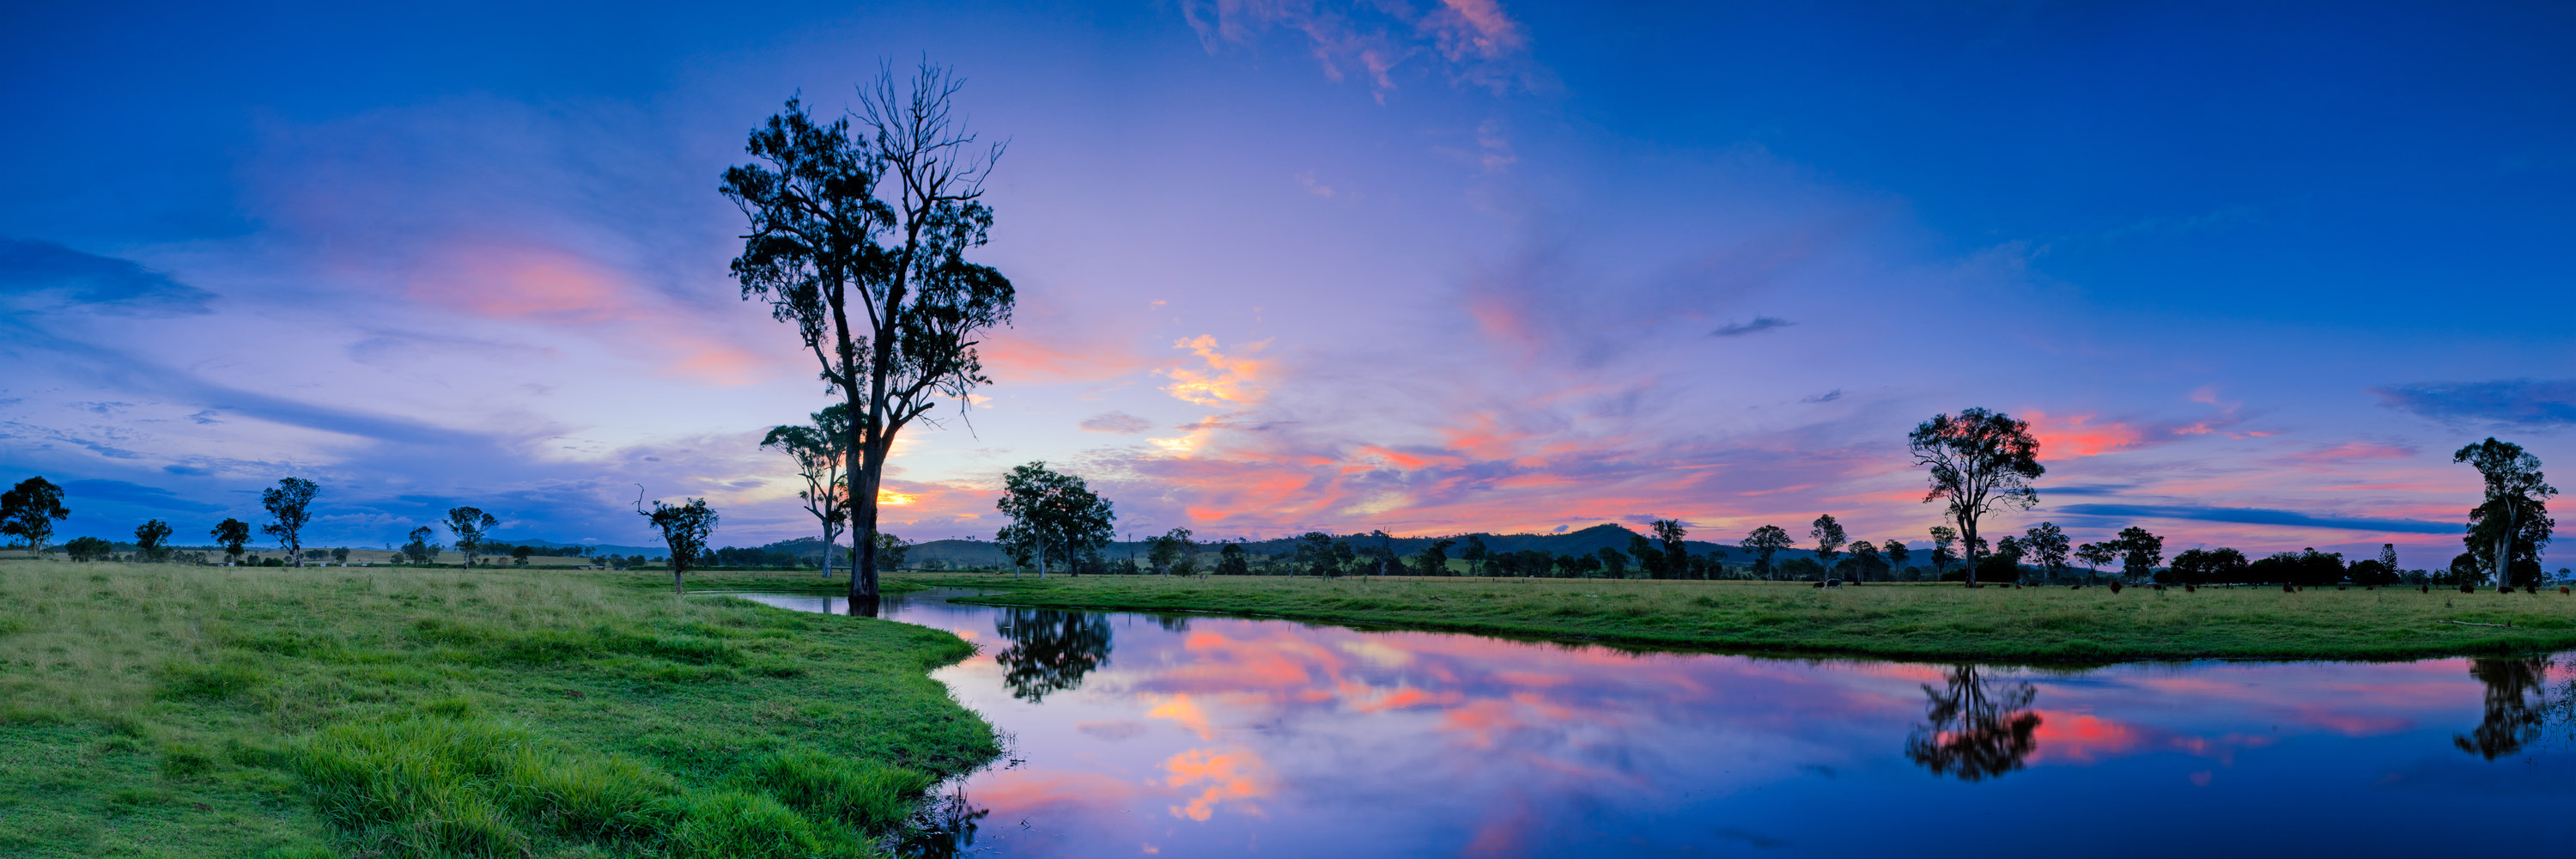 a Scenic Rim sunset over water